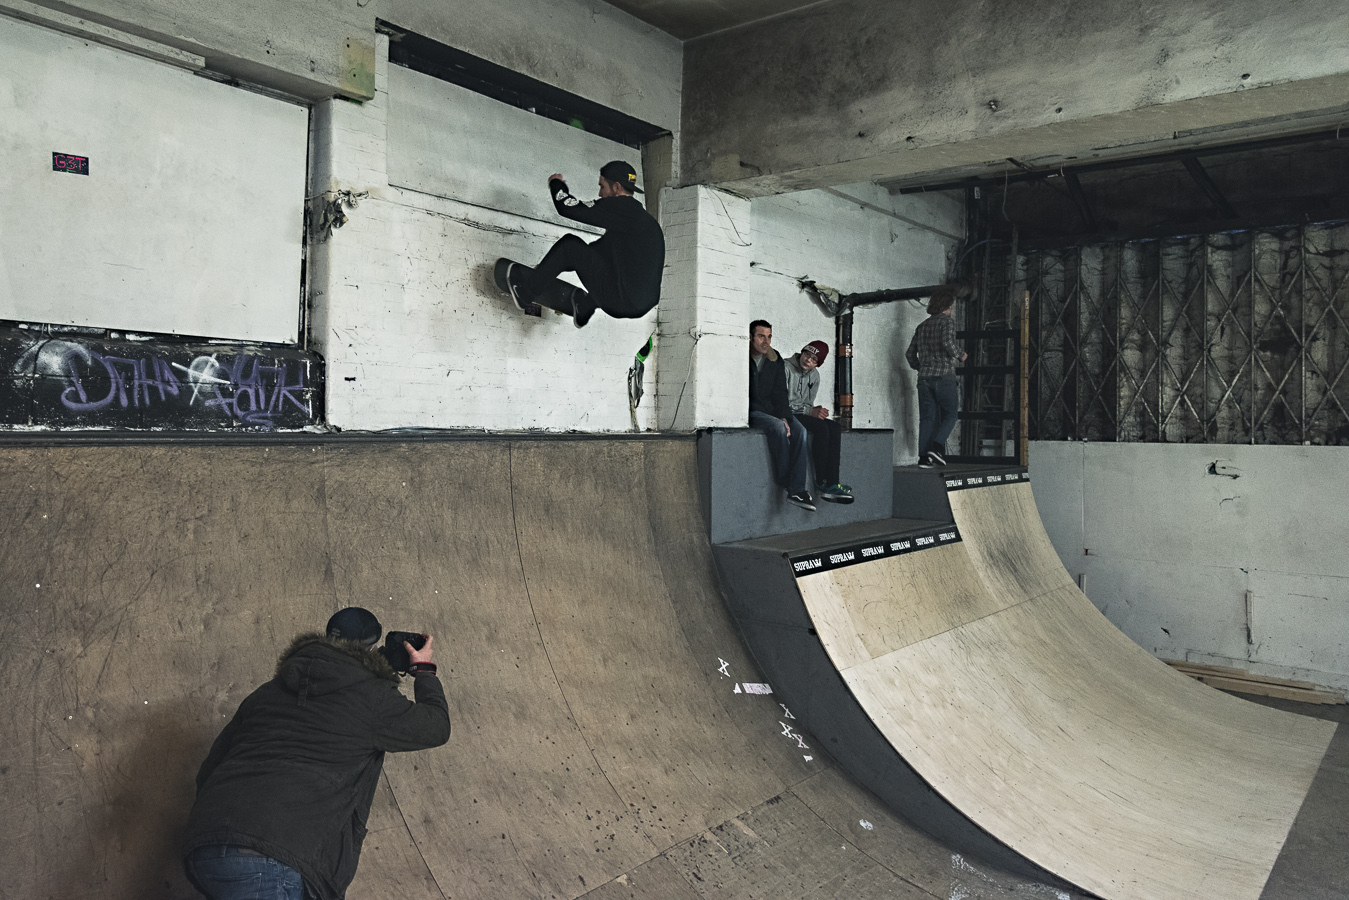 broom-skatepark-shooting.jpg